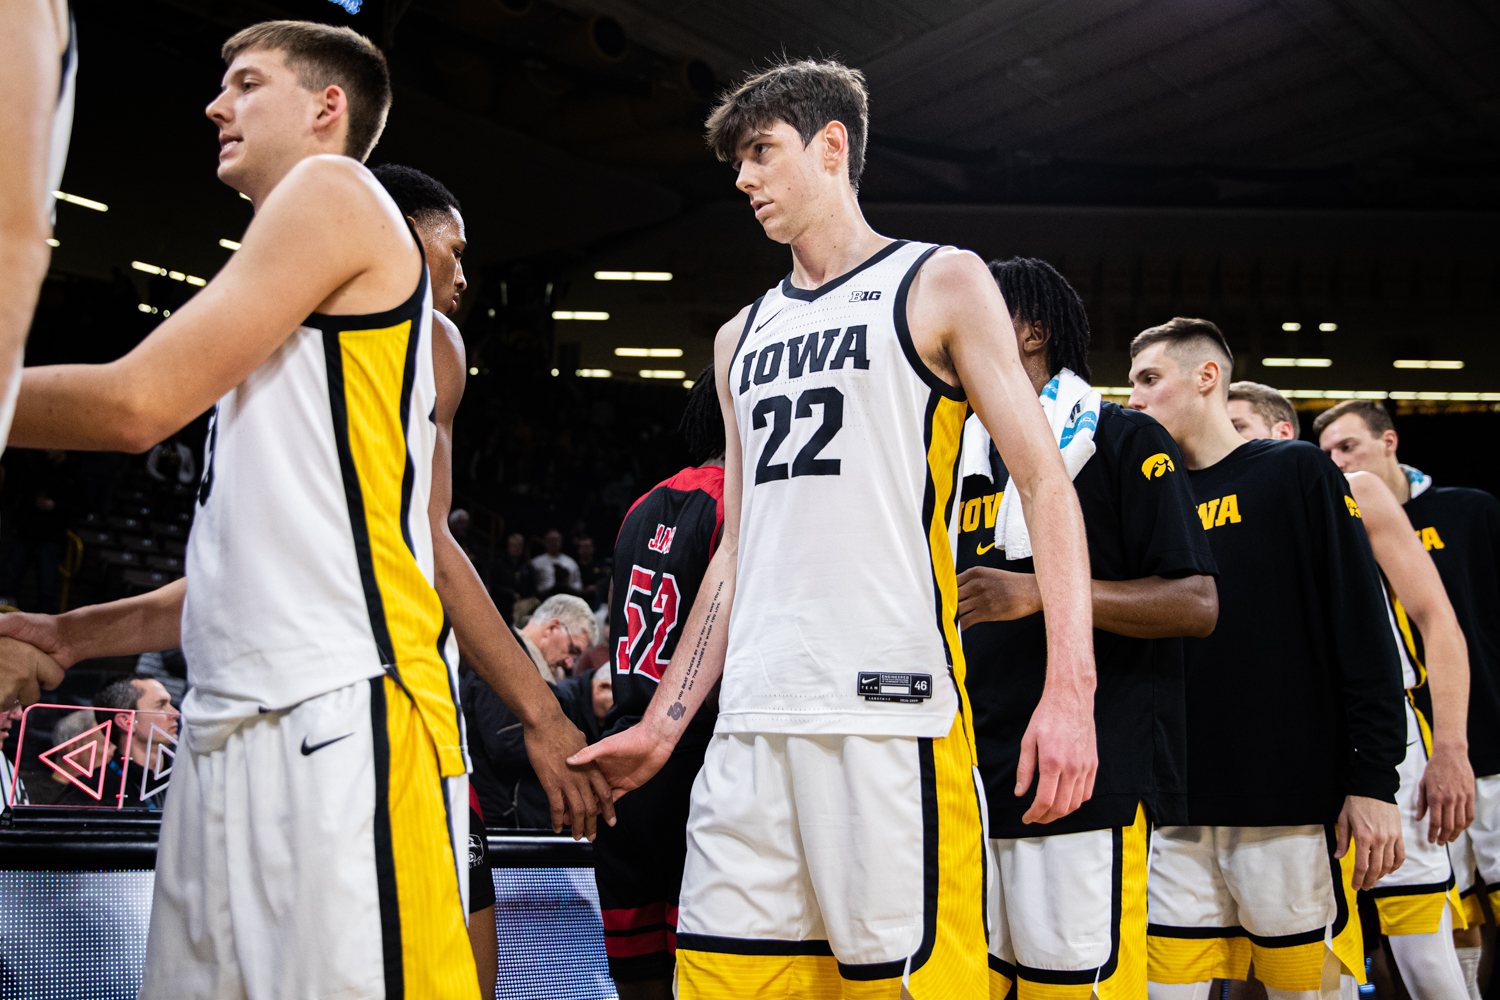 Iowa forward Patrick McCaffery shakes hands after a men's basketball game between Iowa and Southern Illinois-Edwardsville at Carver-Hawkeye Arena on Friday, Nov. 8, 2019. McCaffery finished 2 of 7 from inside the paint and had 4 rebounds on the night.